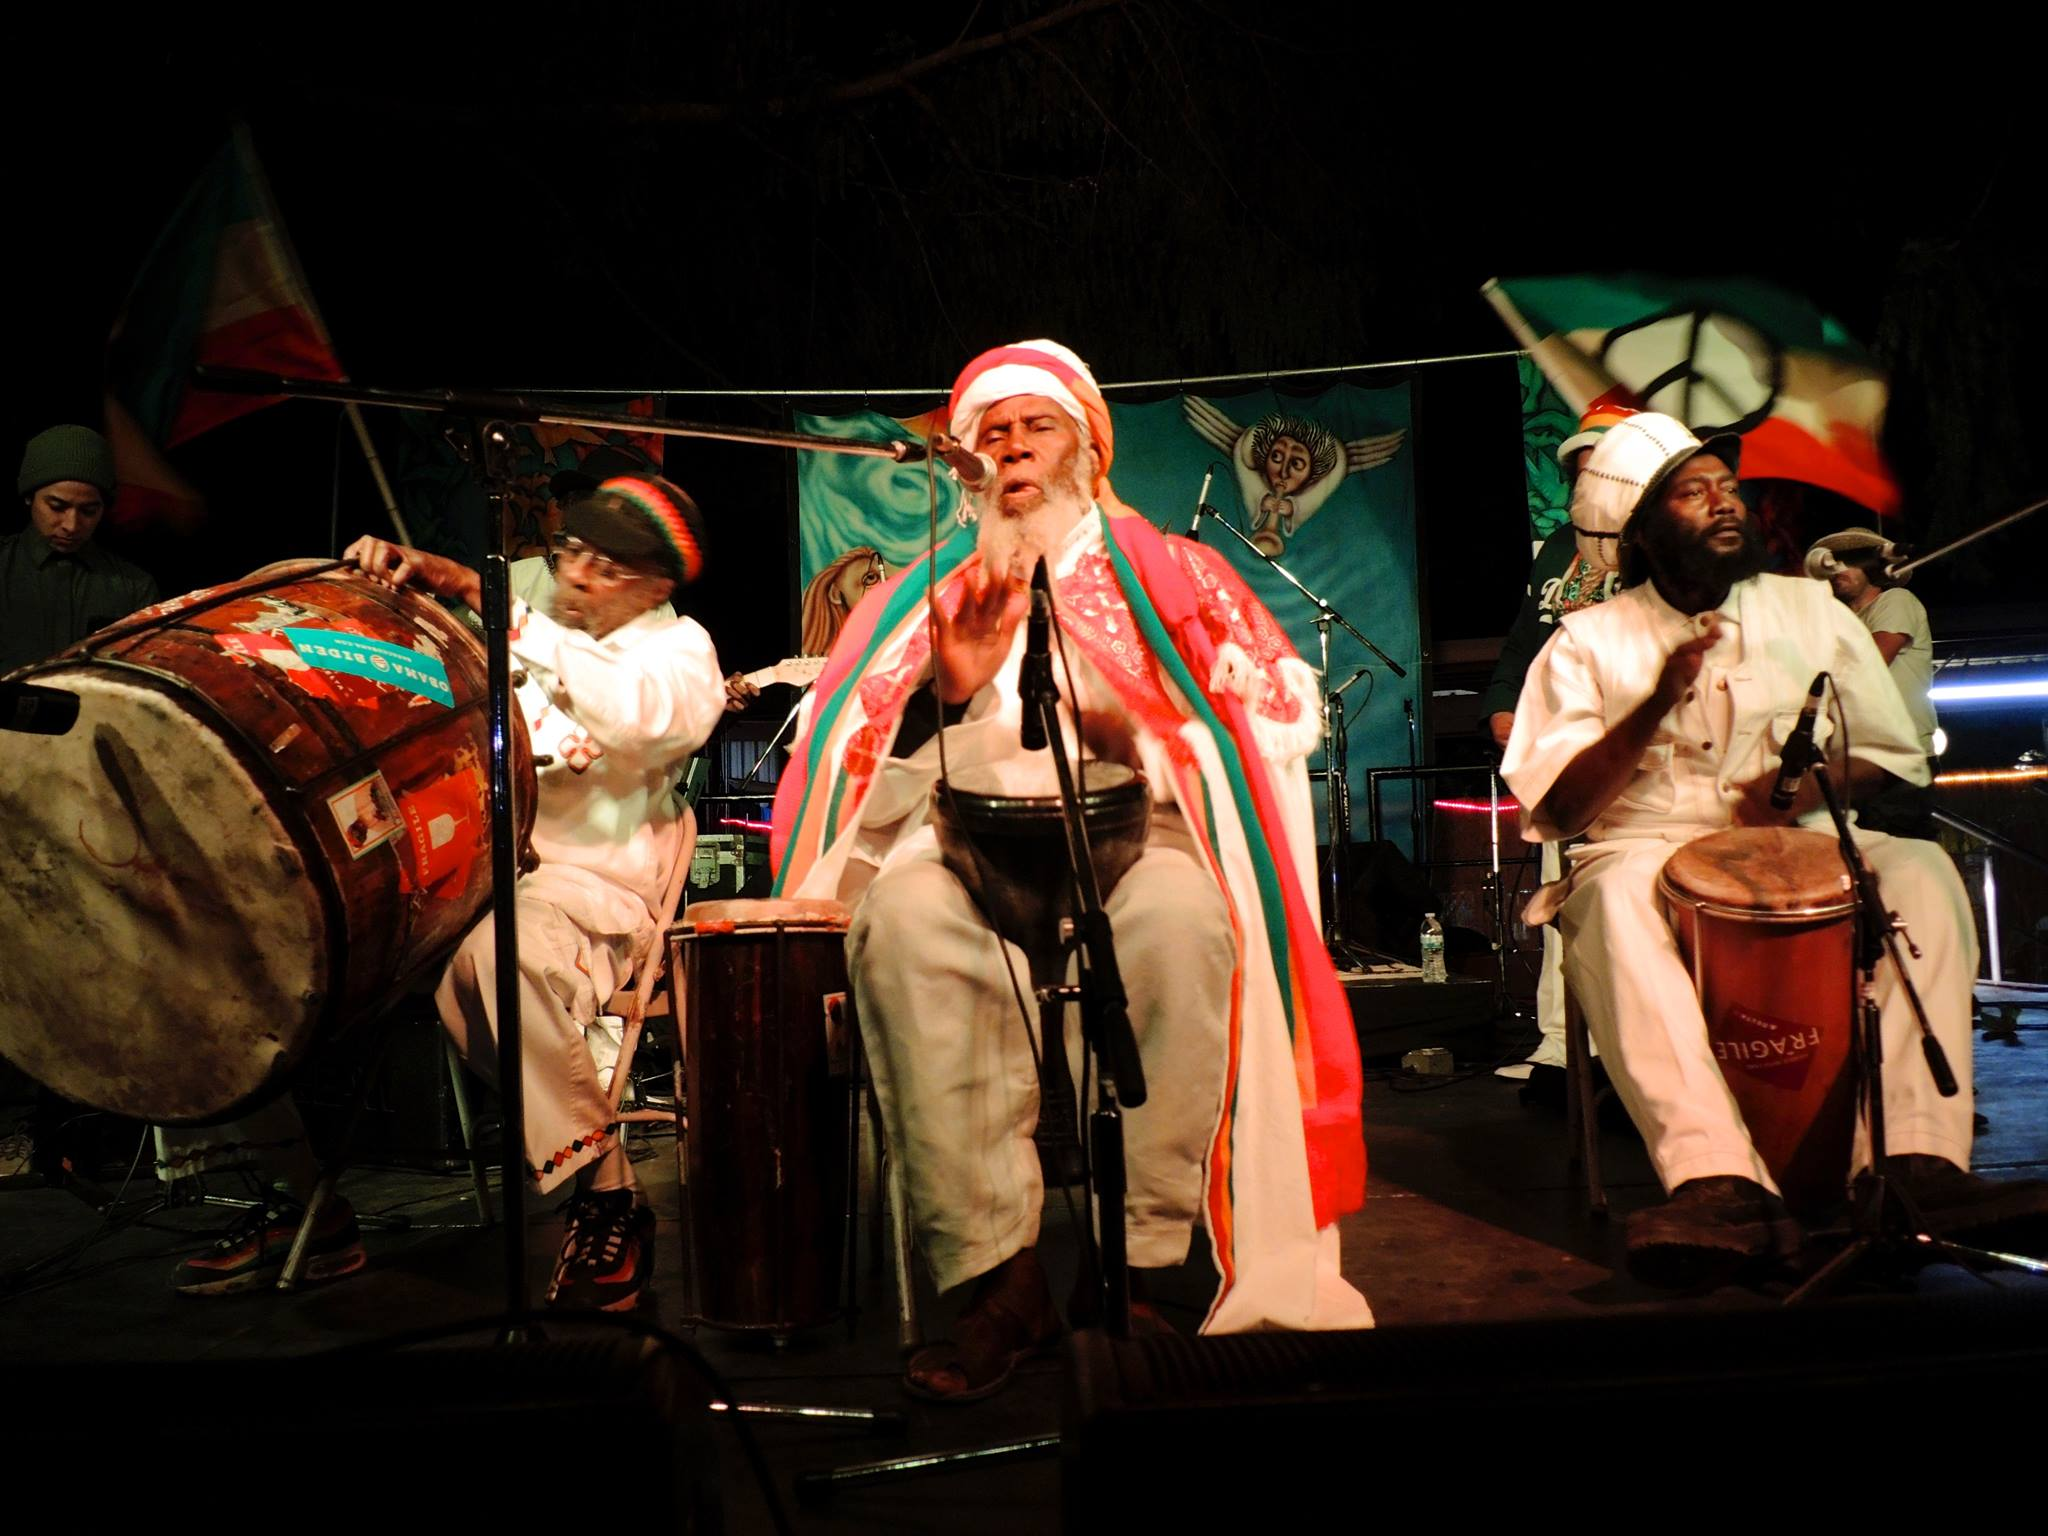 Ras Michael - Sept. 25, 2018 - Jamaican singer and Internationally acclaimed Nyahbinghi master drummer, Ras Michael will perform with his band Sons of Negus on Oct 12-14 at the Richmond Folk Festival!In 1989, ROIR released a cassette tape of Ras Michael remastered dubs called Rastafari Dub. The recording features Jamaican music heavyweights Peter Tosh, Robbie Shakespeare, Earl 'Chinna' Smith, Tommy McCook and Geoffrey Chung. It's still available to stream and buy on CD and Vinyl here!